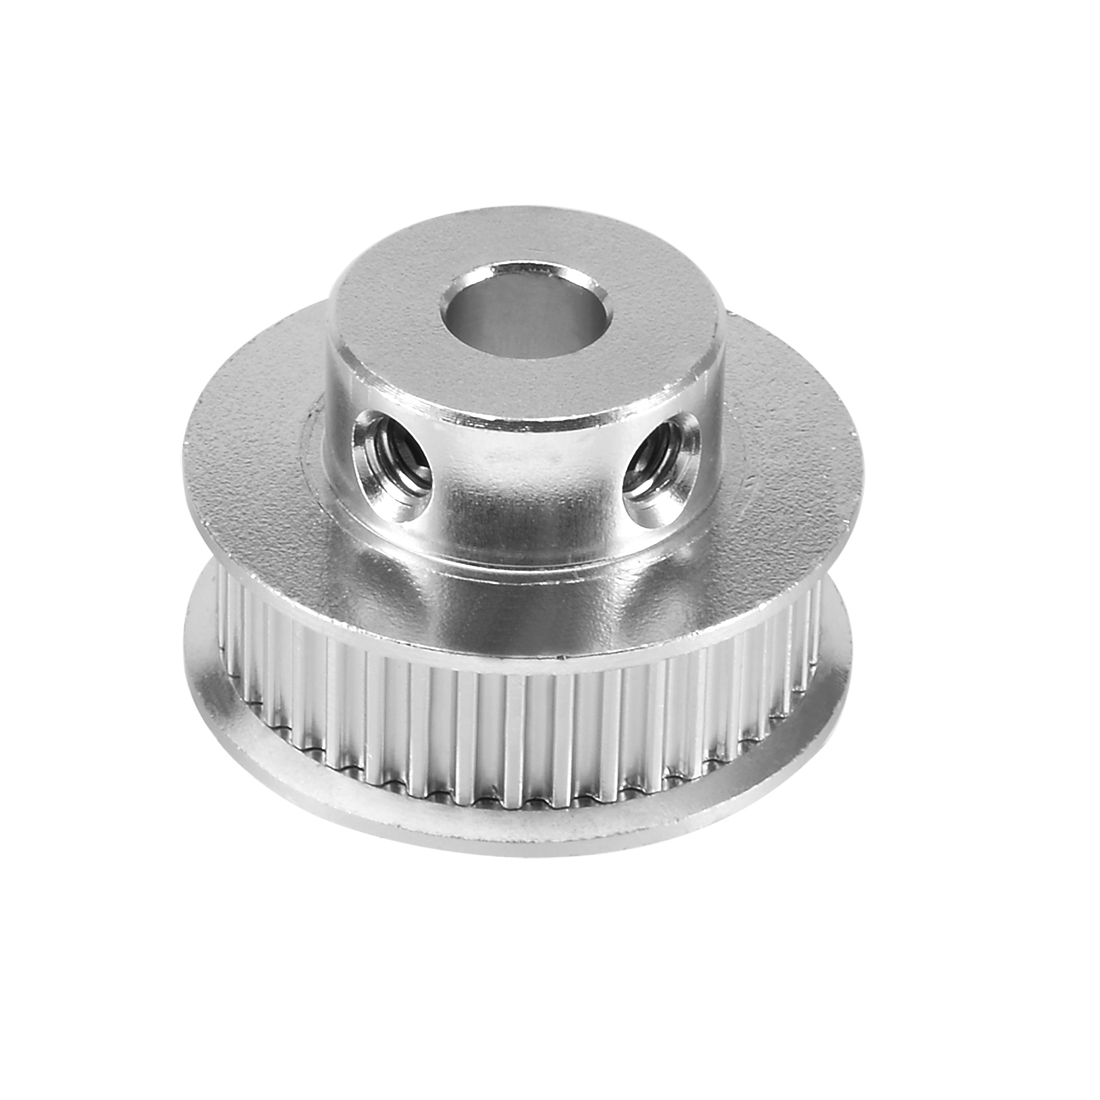 Aluminum GT2 40 Teeth 5mm Bore Timing Belt Pulley Flange Synchronous Wheel for 3D Printer